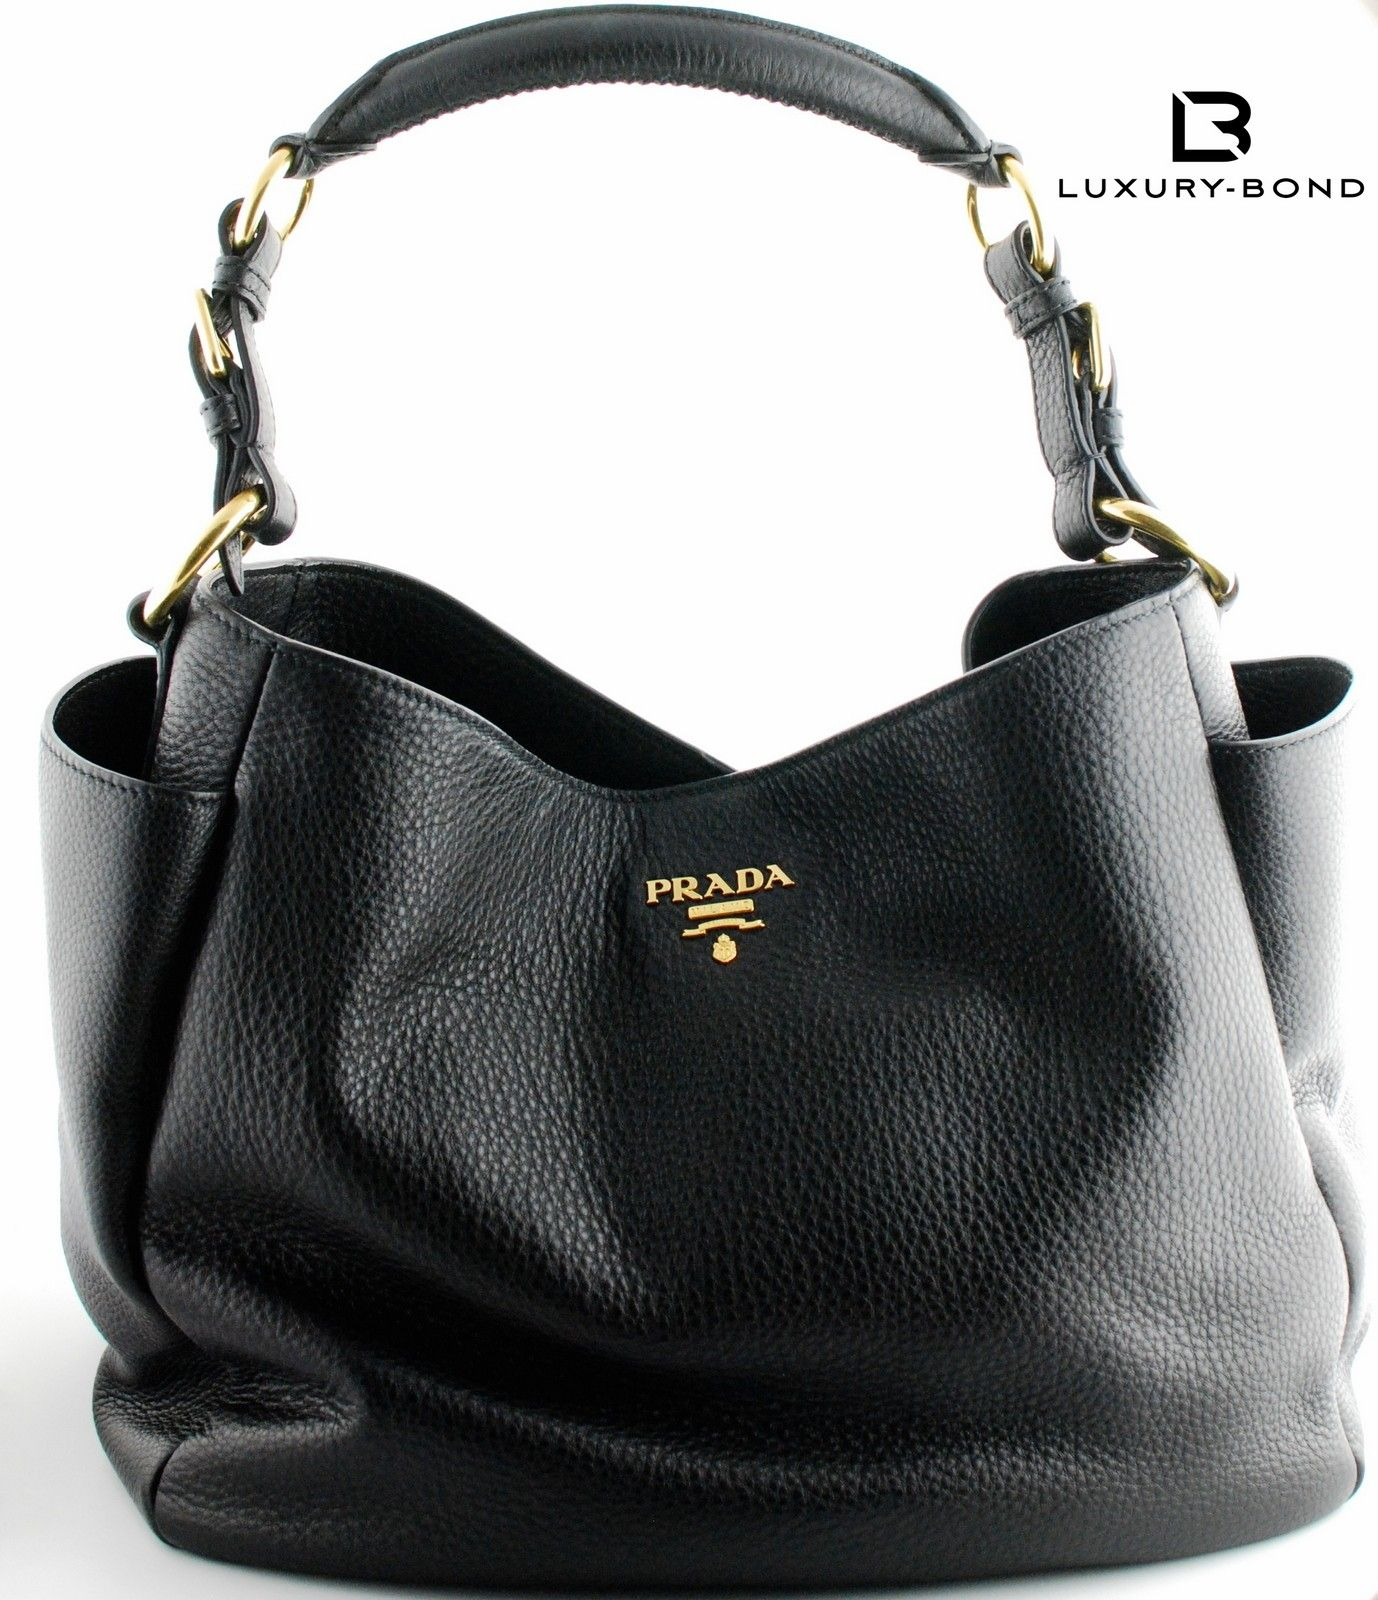 Prada BR4863 Vitello Daino Shopping Tote Hobo Bag Nero Black ...